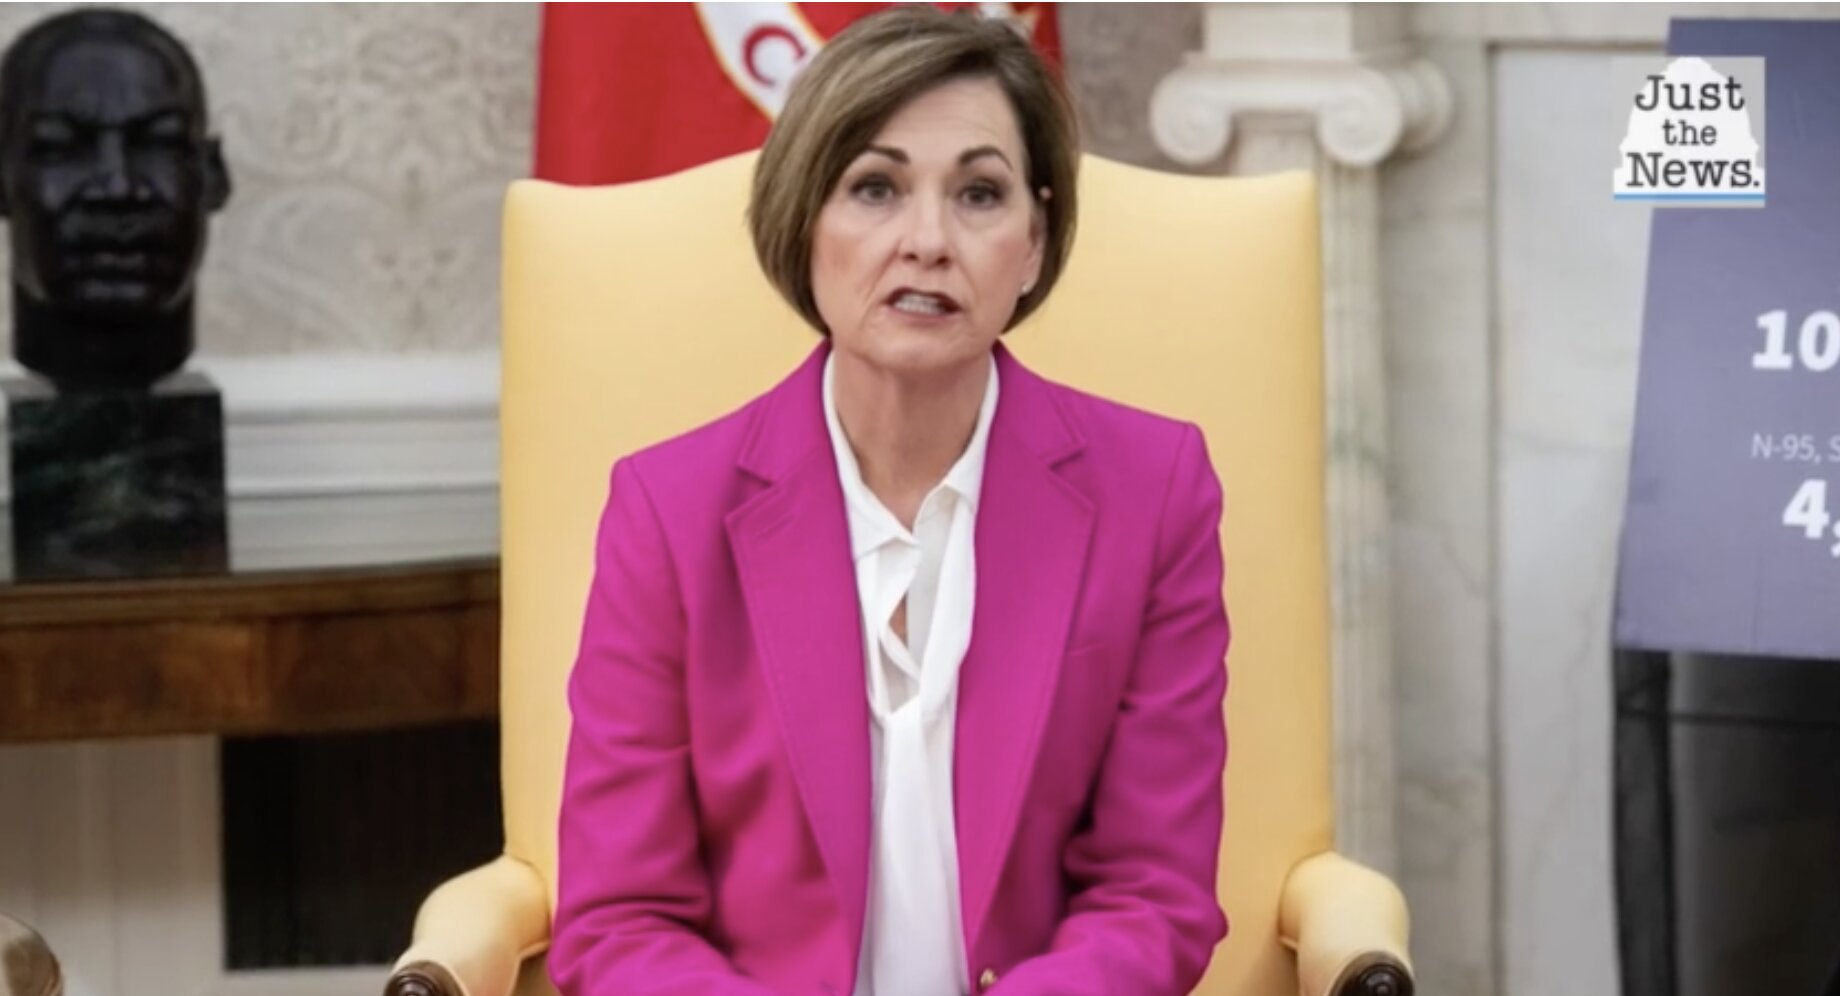 Iowa Gov. Kim Reynolds removes COVID-19 social distancing, mask rules